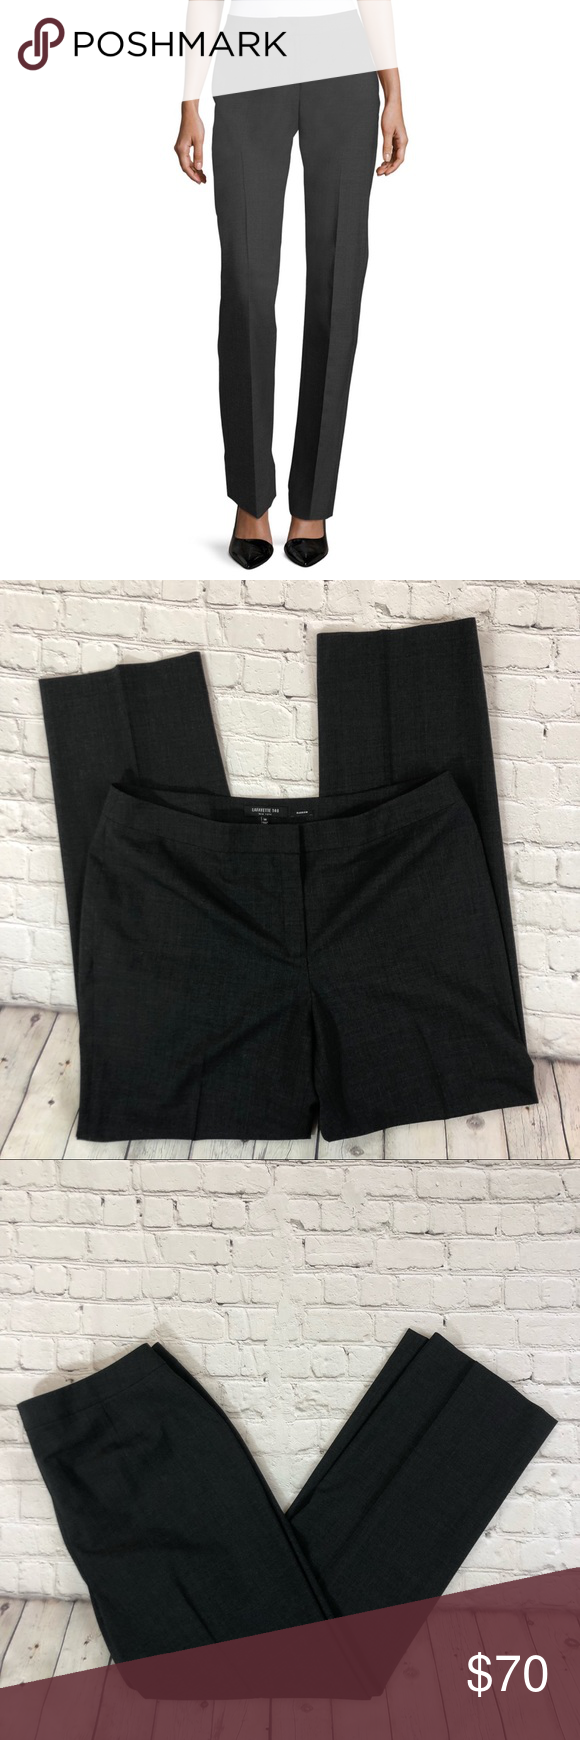 ac0b1a6ce5b Lafayette 148 Plus Finesse Straight Barrow Pants Find expert tailoring and  modern style with our Barrow